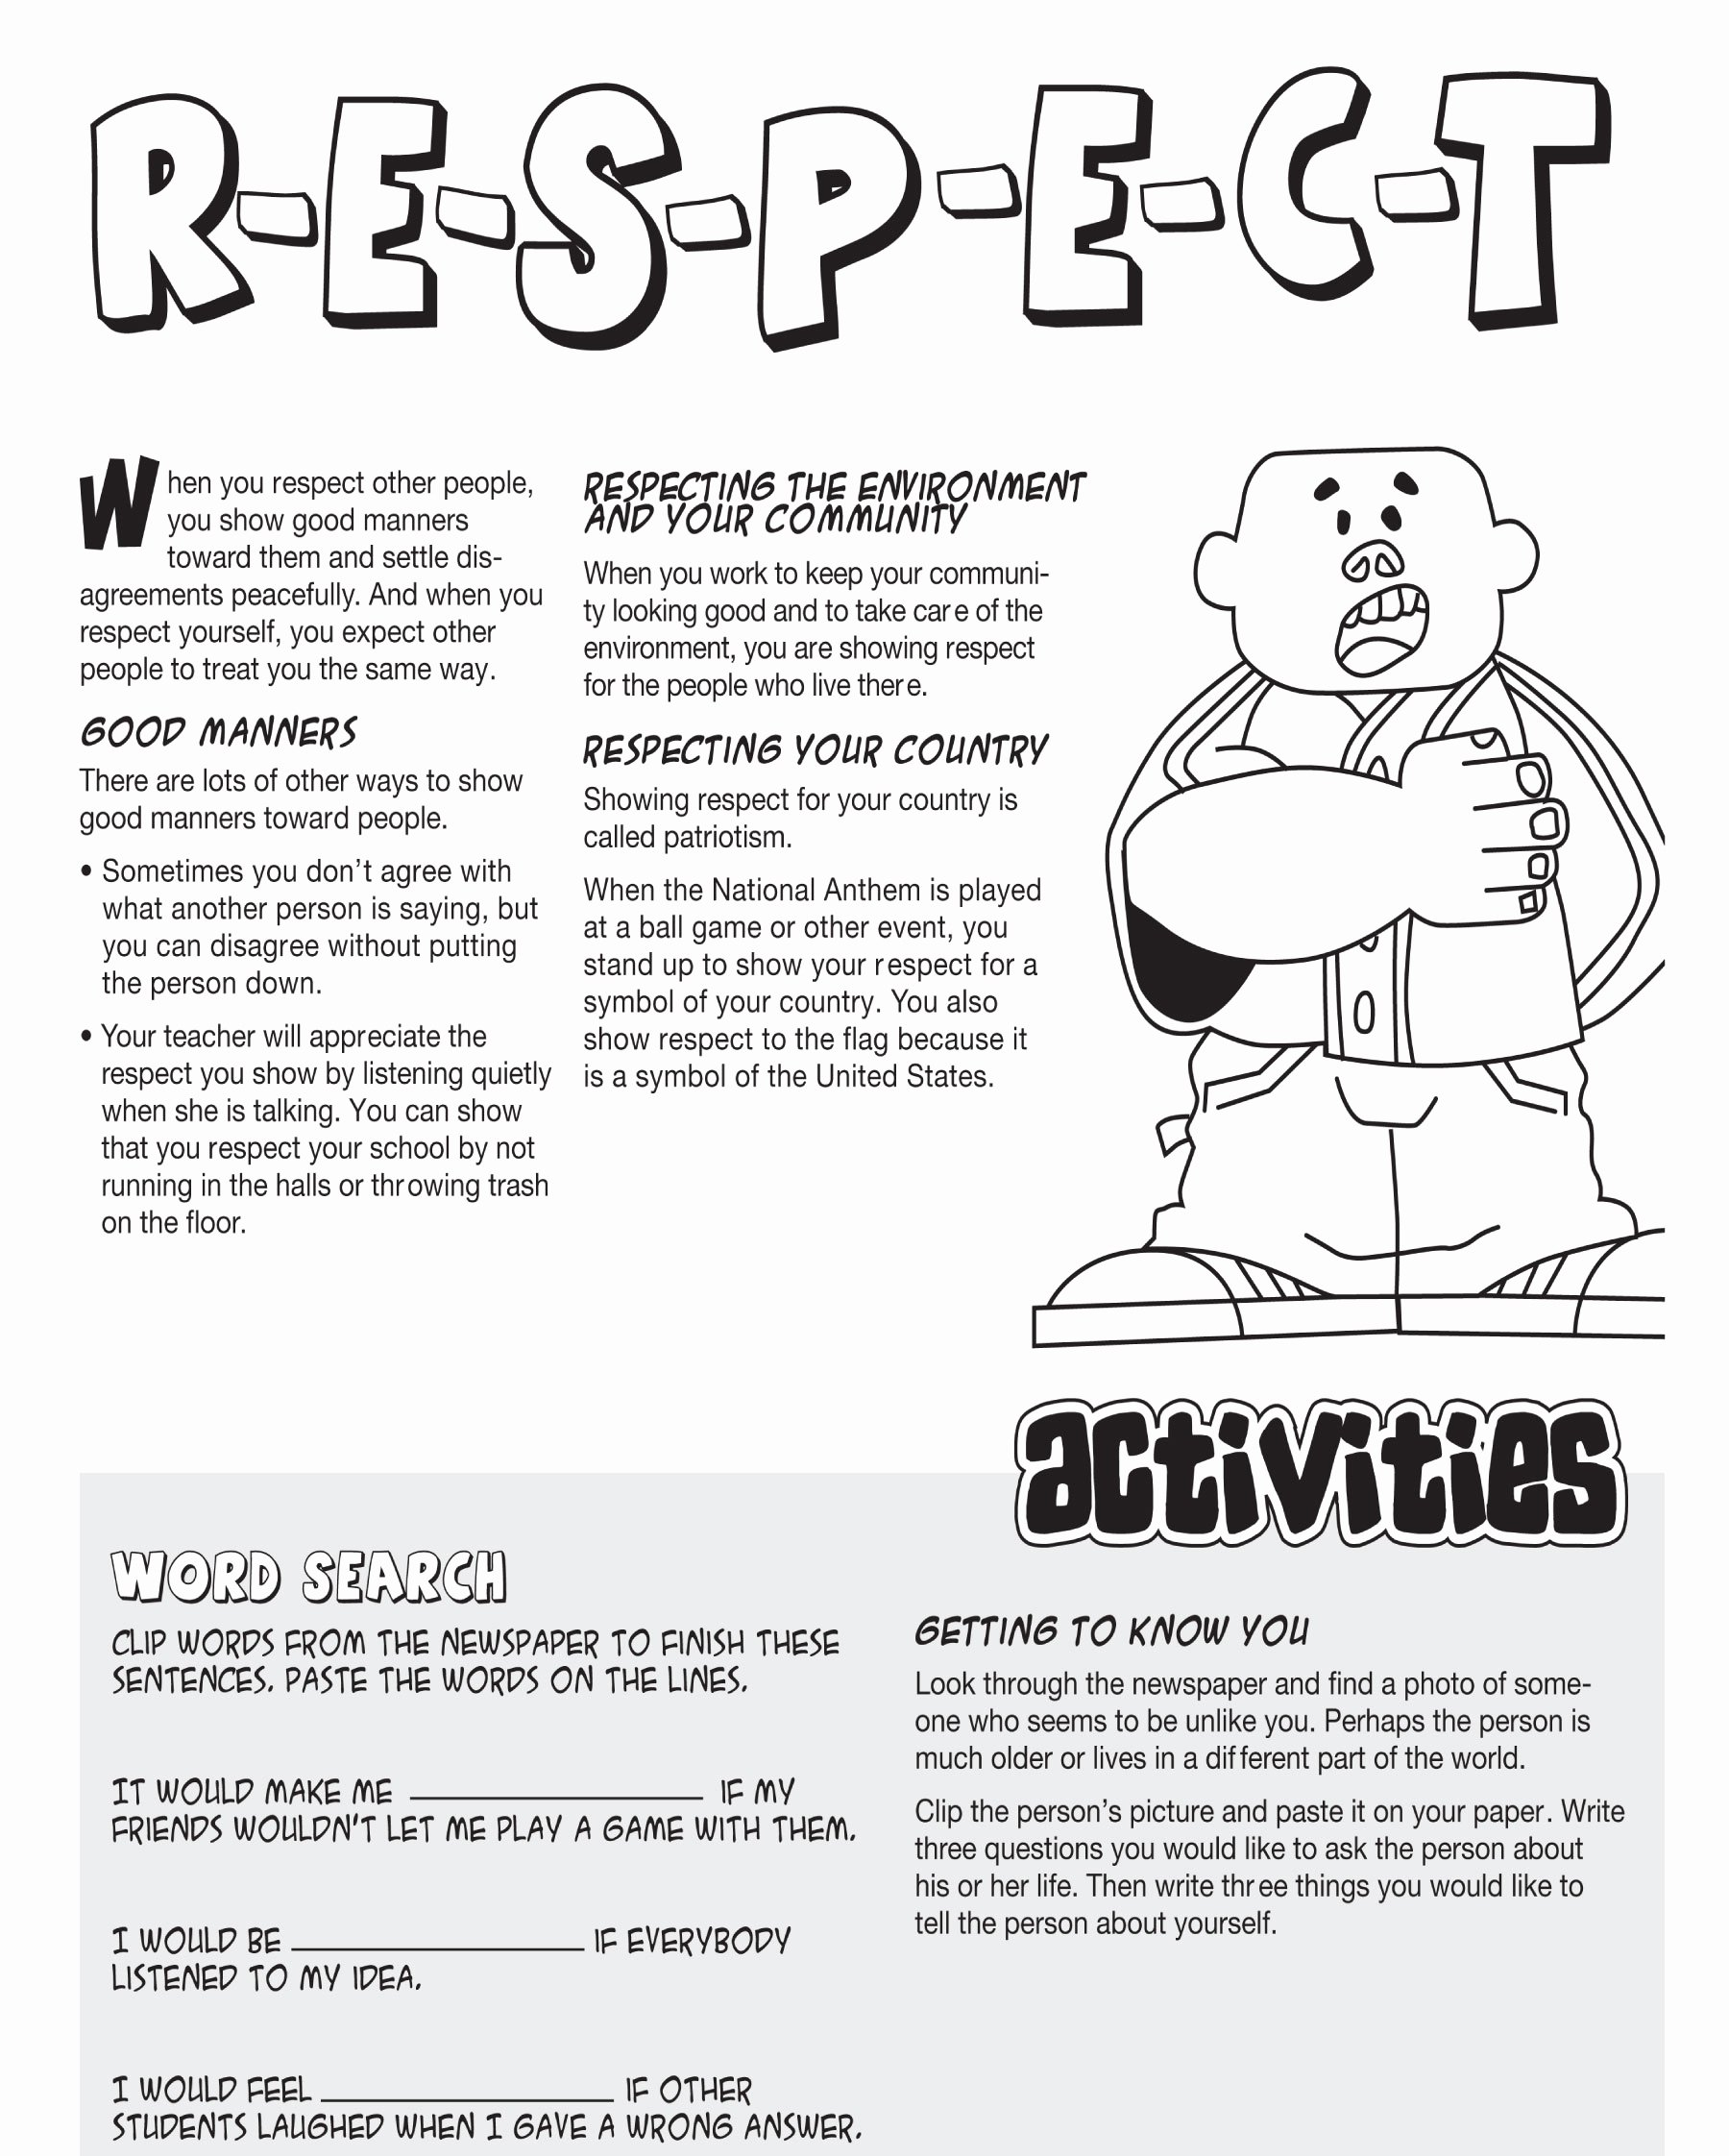 Respecting Others Property Worksheet